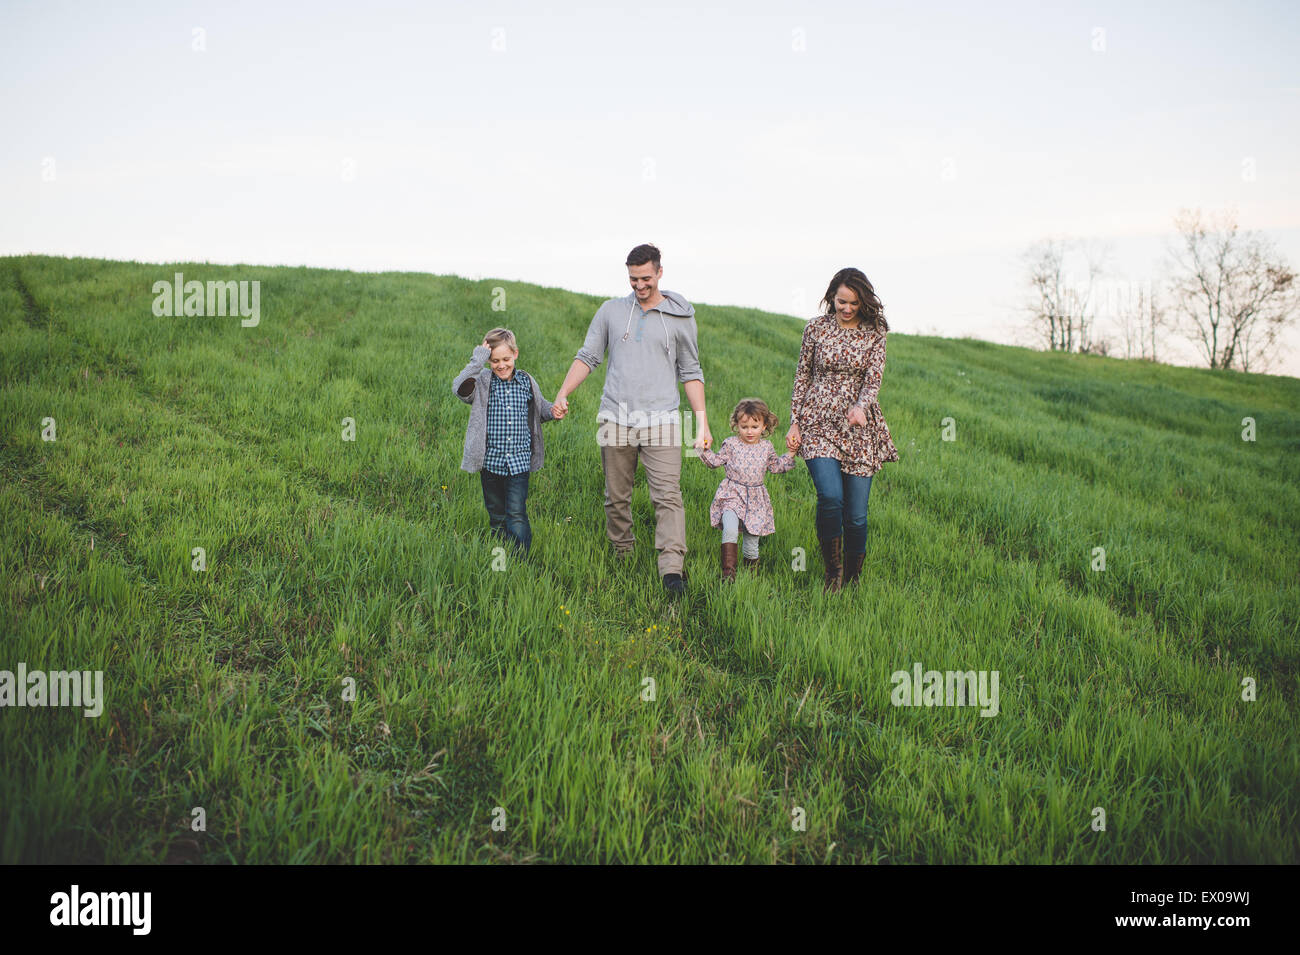 Parents with son and daughter strolling in grassy field - Stock Image